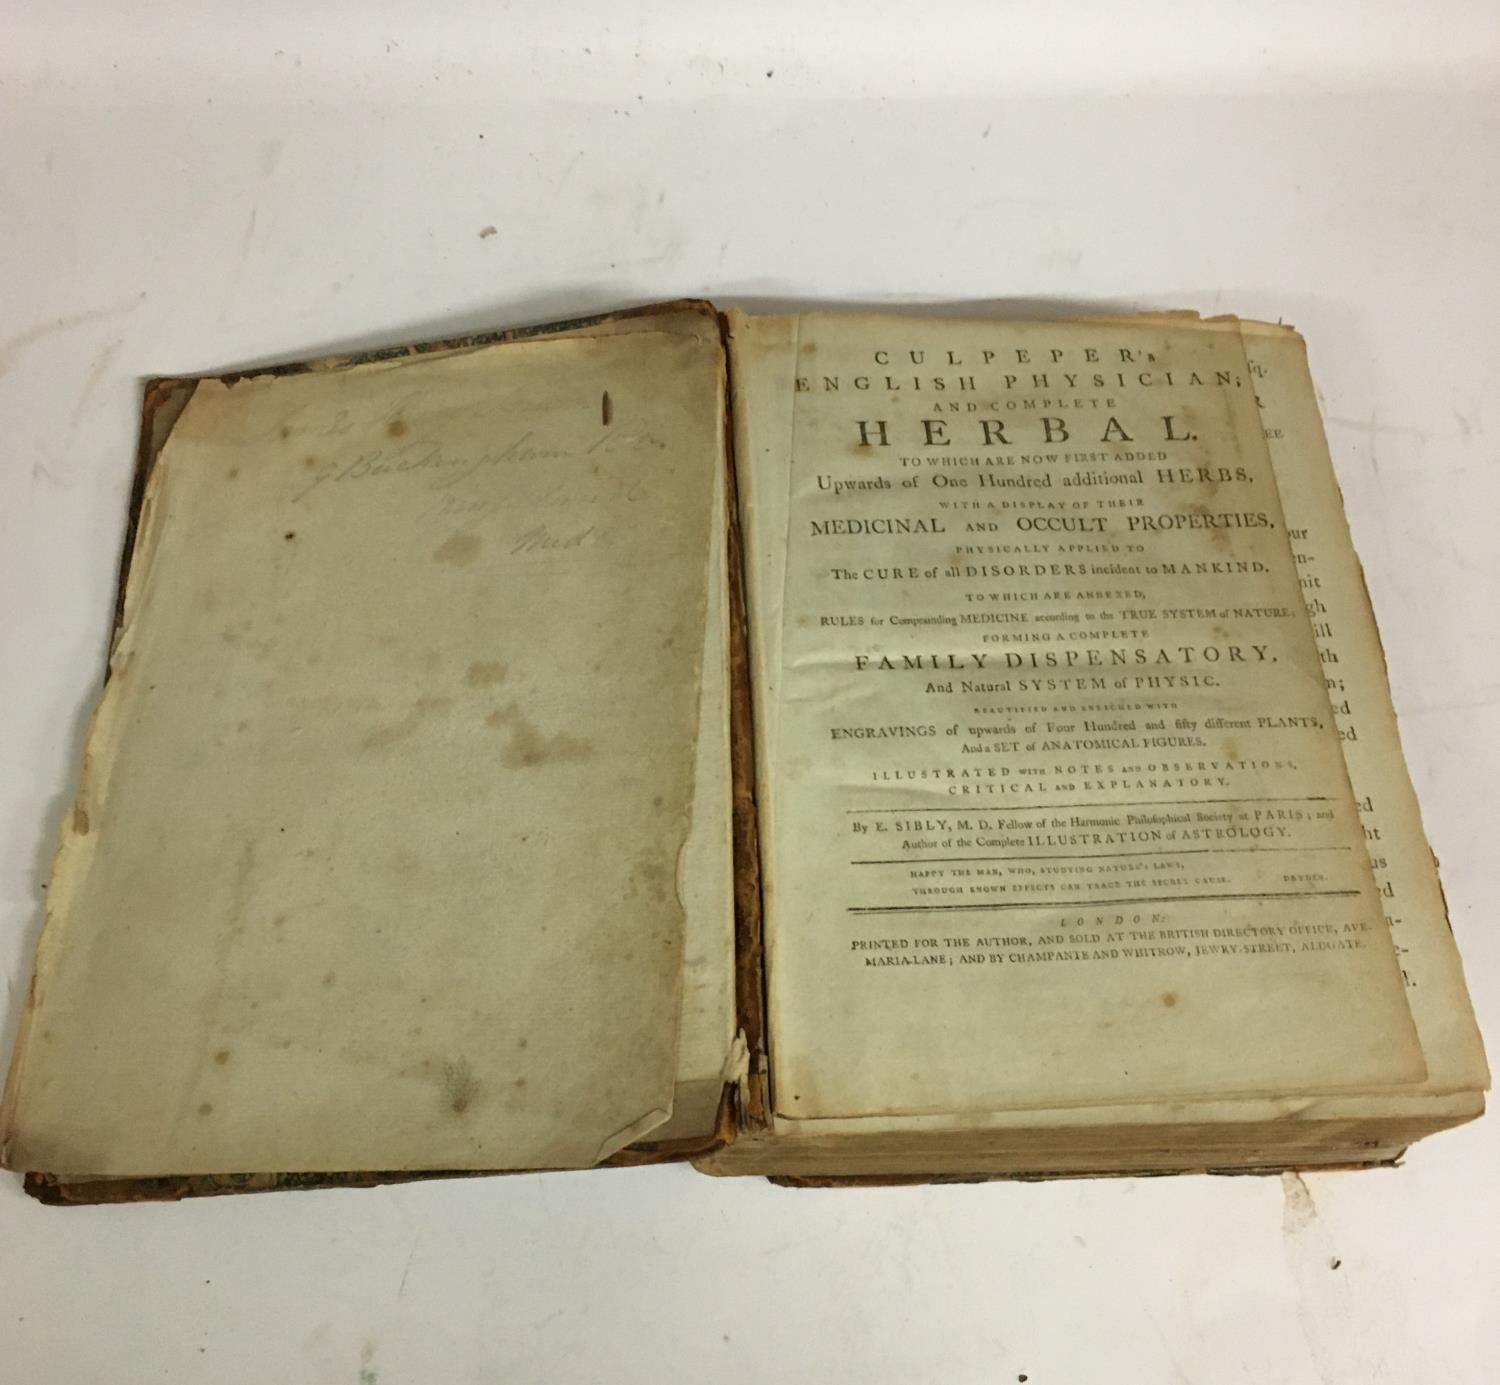 Culpeper, Nicholas. The English Physician; and Complete Herbal... with Notes and Observations, - Image 4 of 7